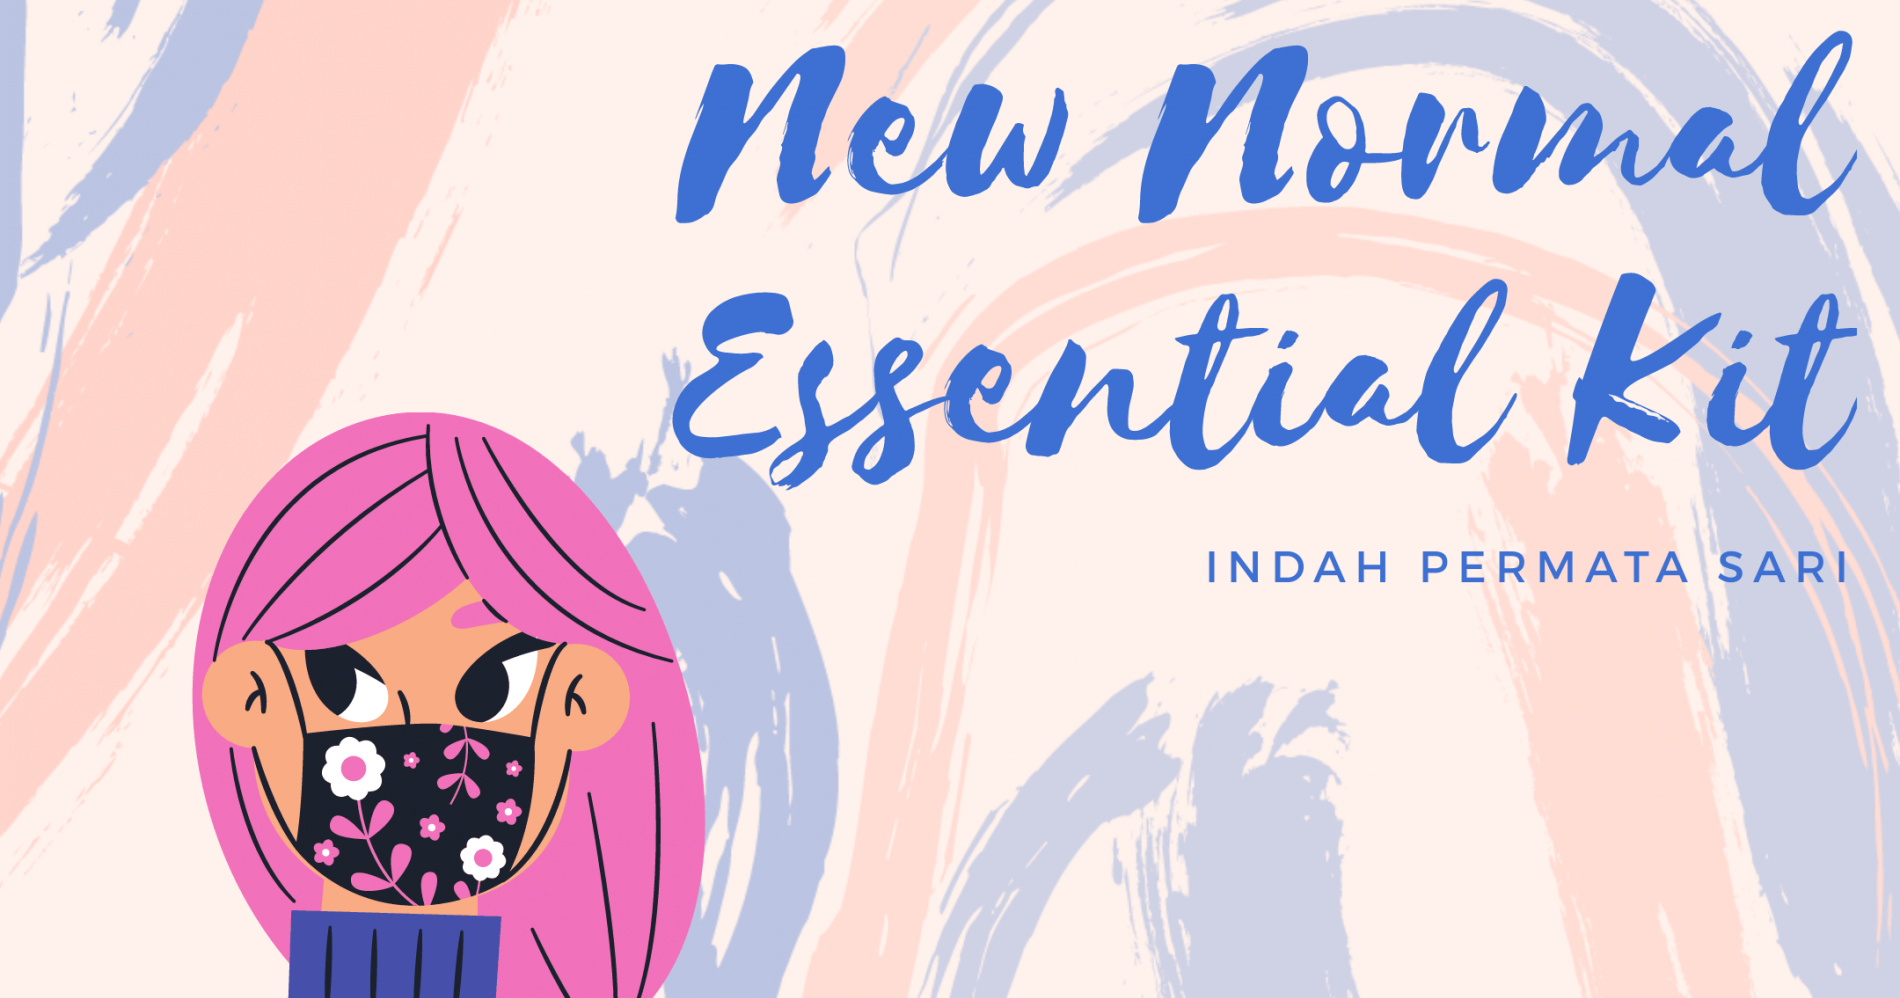 New Normal Essential Kit (sumber gambar: dokumentasi pribadi)